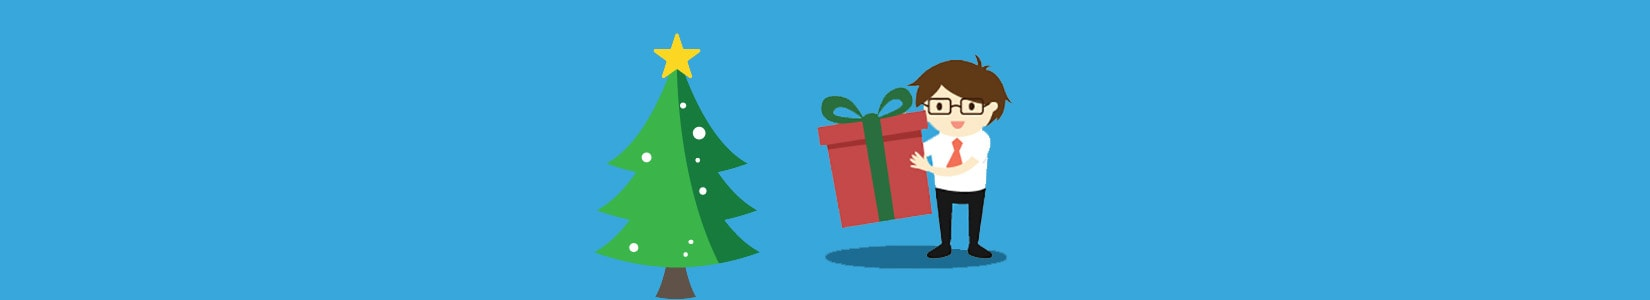 How to take your recruitment agency brand from scrooge to santa - full width image1-min.jpg